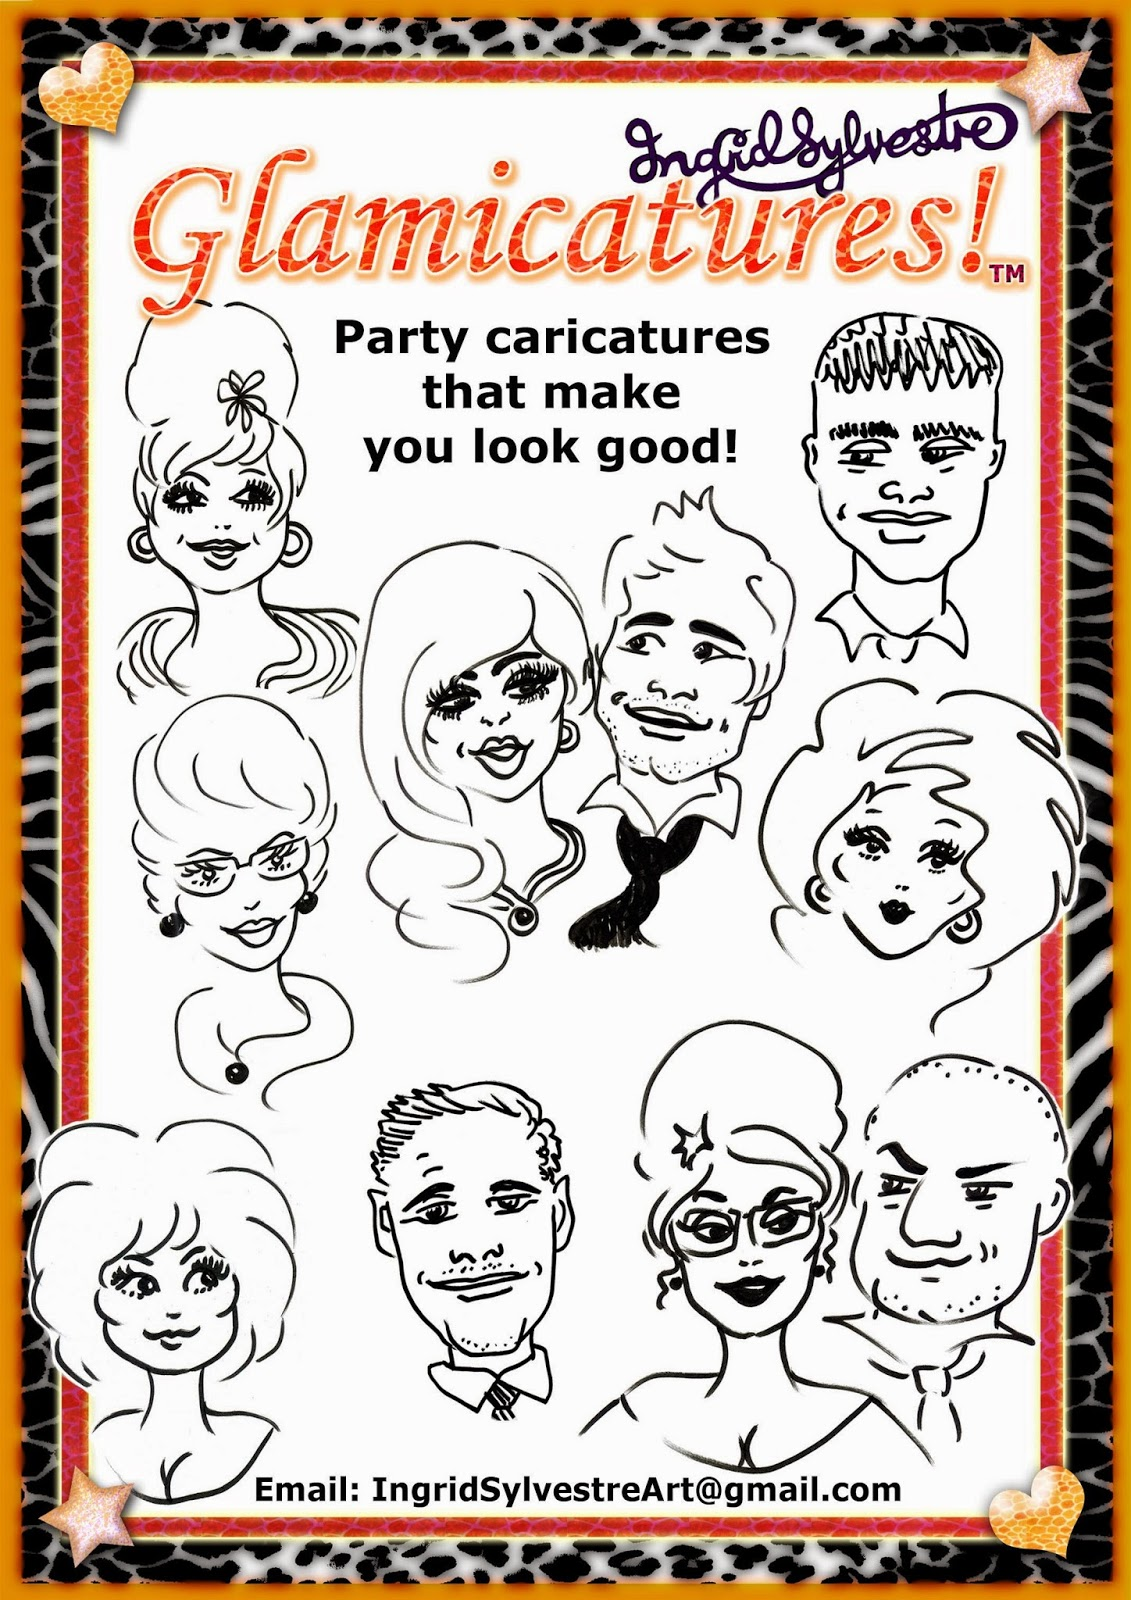 Luxury Wedding Entertainment ideas Wedding Reception Entertainment Wedding Evening Entertainment UK Unique Wedding Entertainment ideas Unusual Wedding ideas High Class Wedding Entertainment Top Quality Wedding Entertainment UK Glamicatures TM Party Caricatures that make you look good Ingrid Sylvestre UK caricature artist